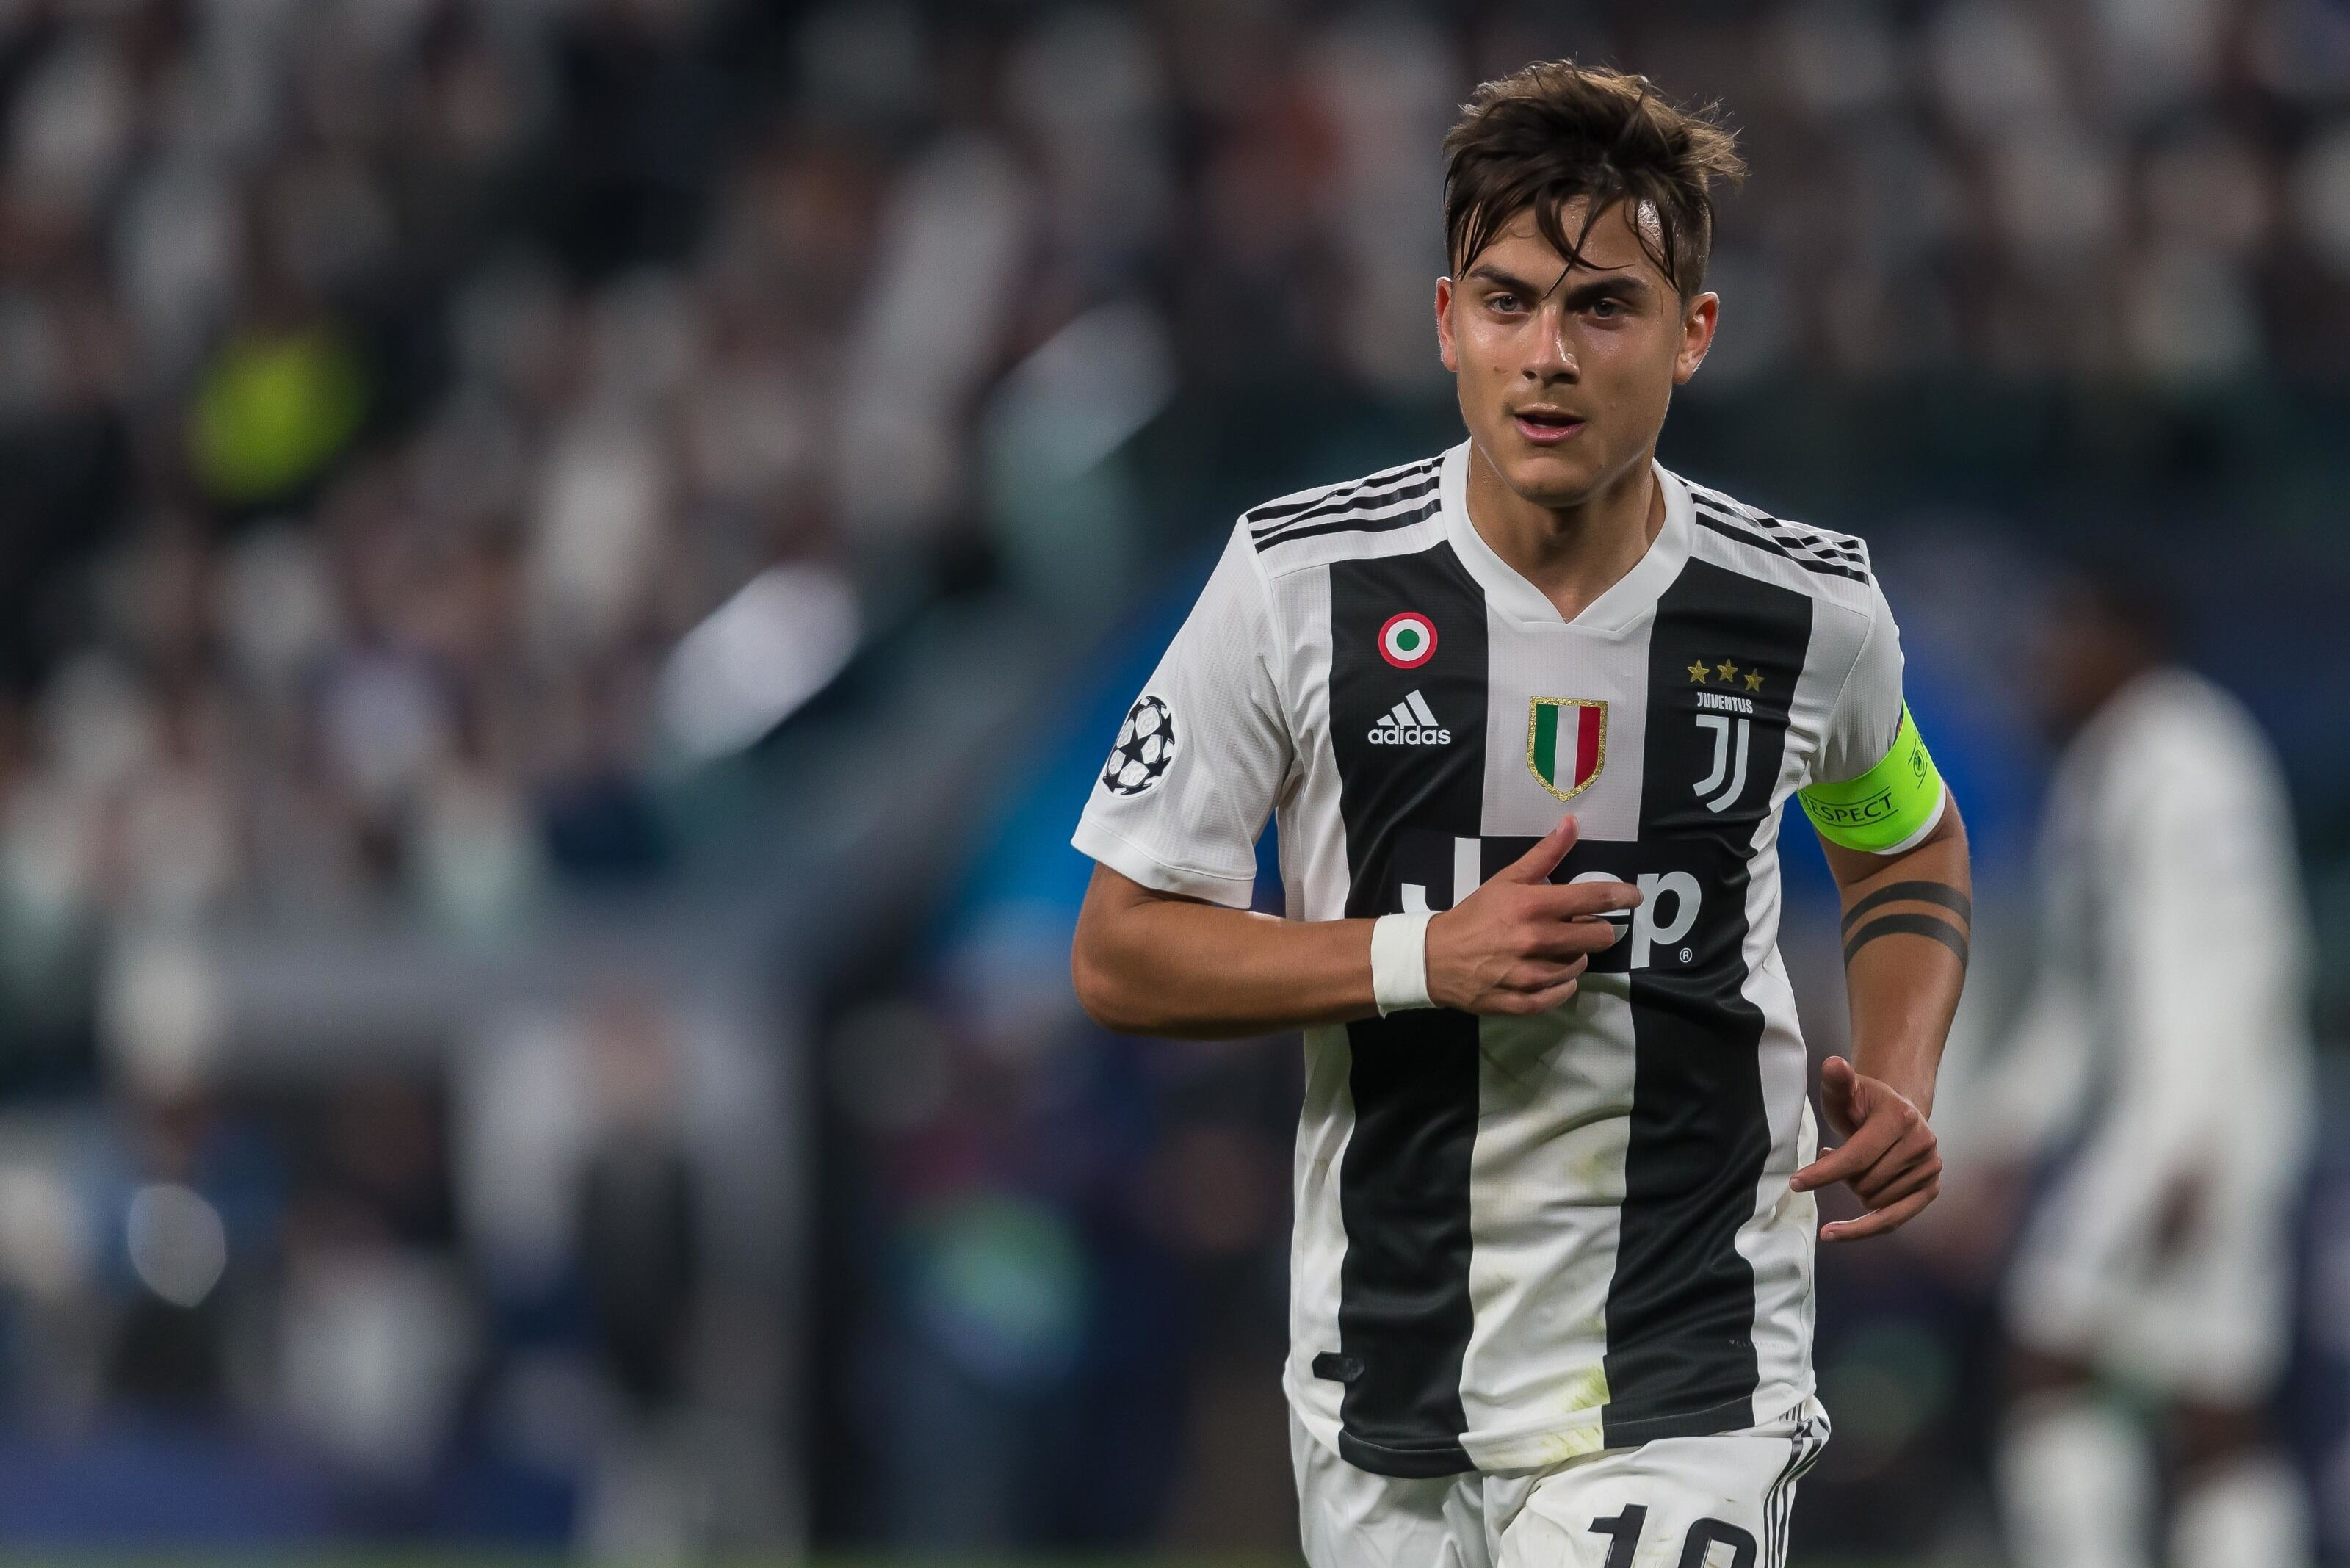 df20670dc Bayern Munich reportedly begin talks to sign Paulo Dybala from Juventus